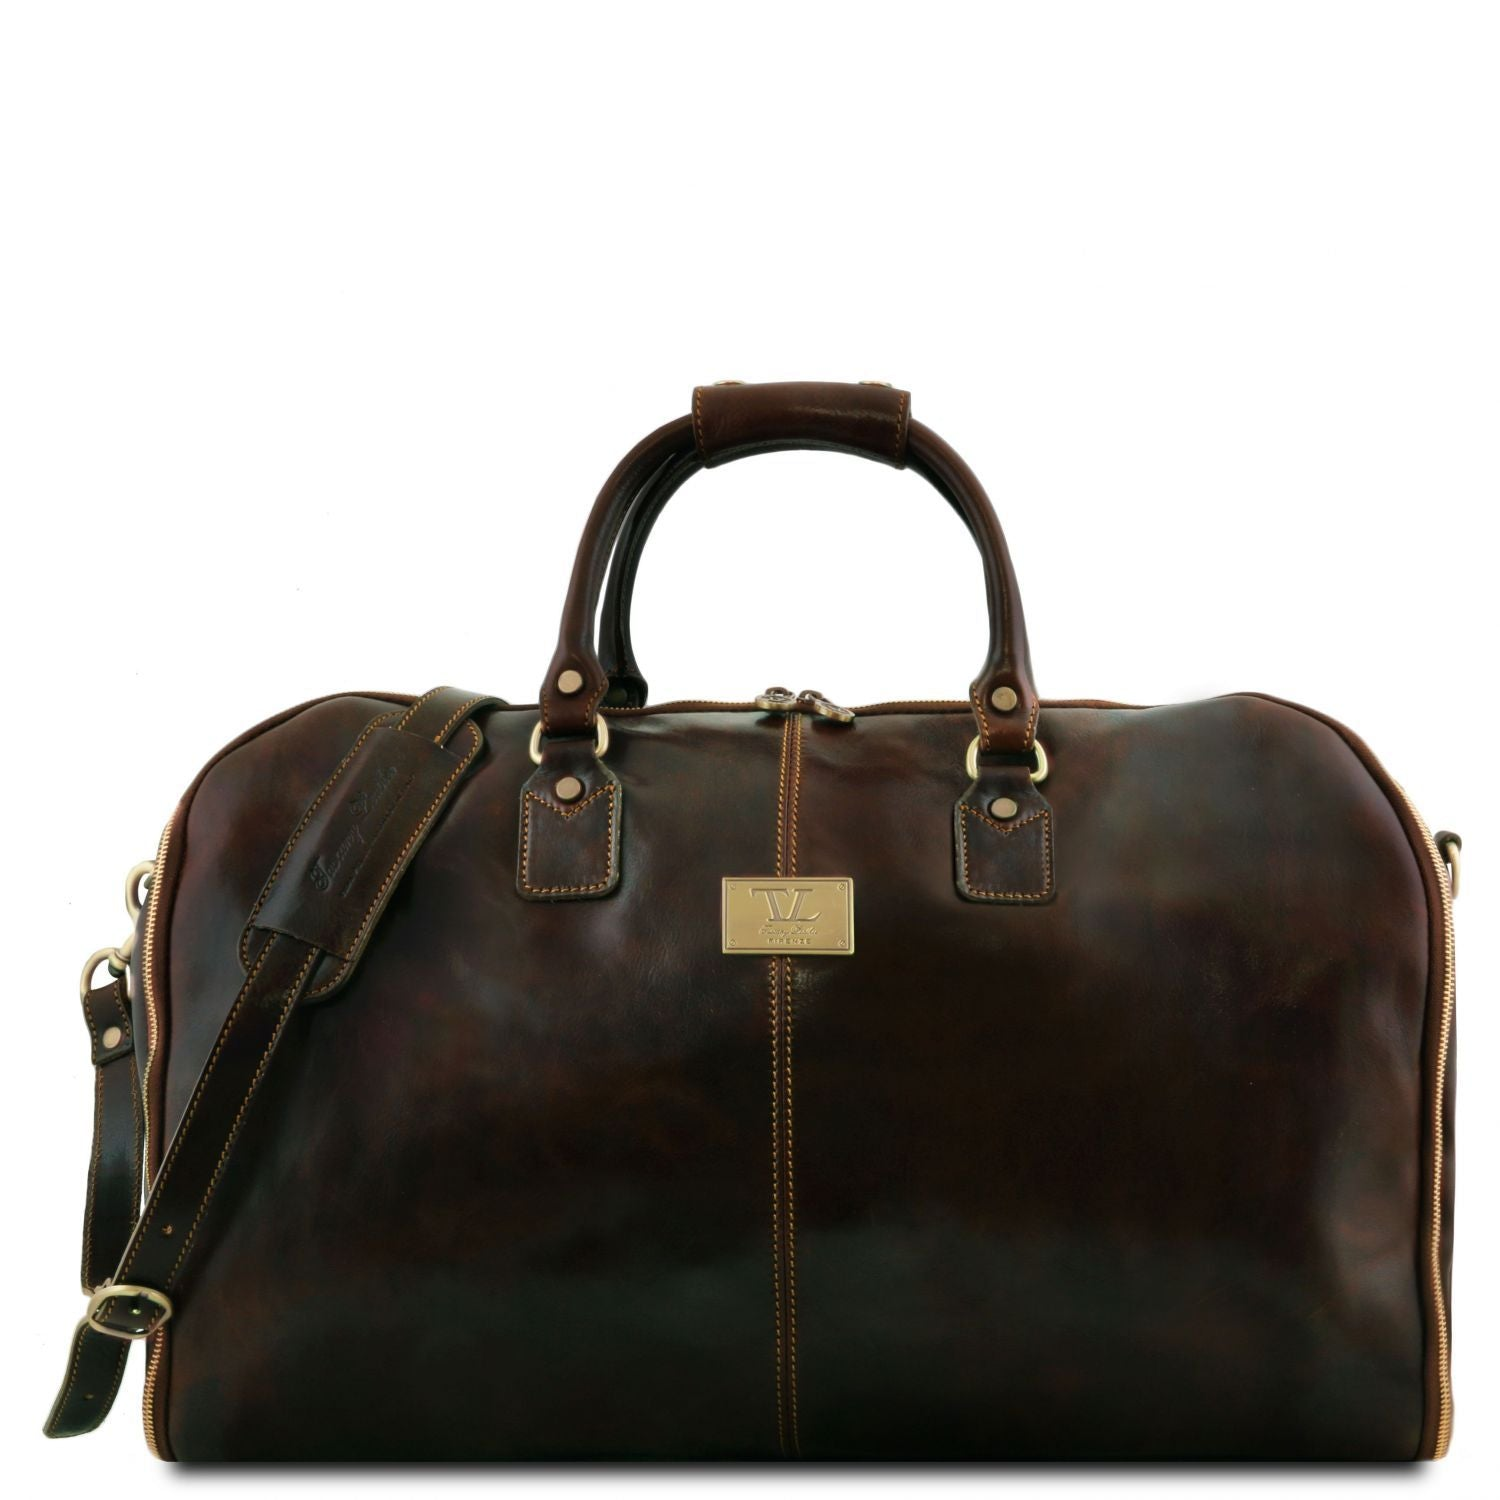 Antigua - Travel leather duffle/Garment bag (TL141538) - Leather Travel bags | DILUSSOBAGS